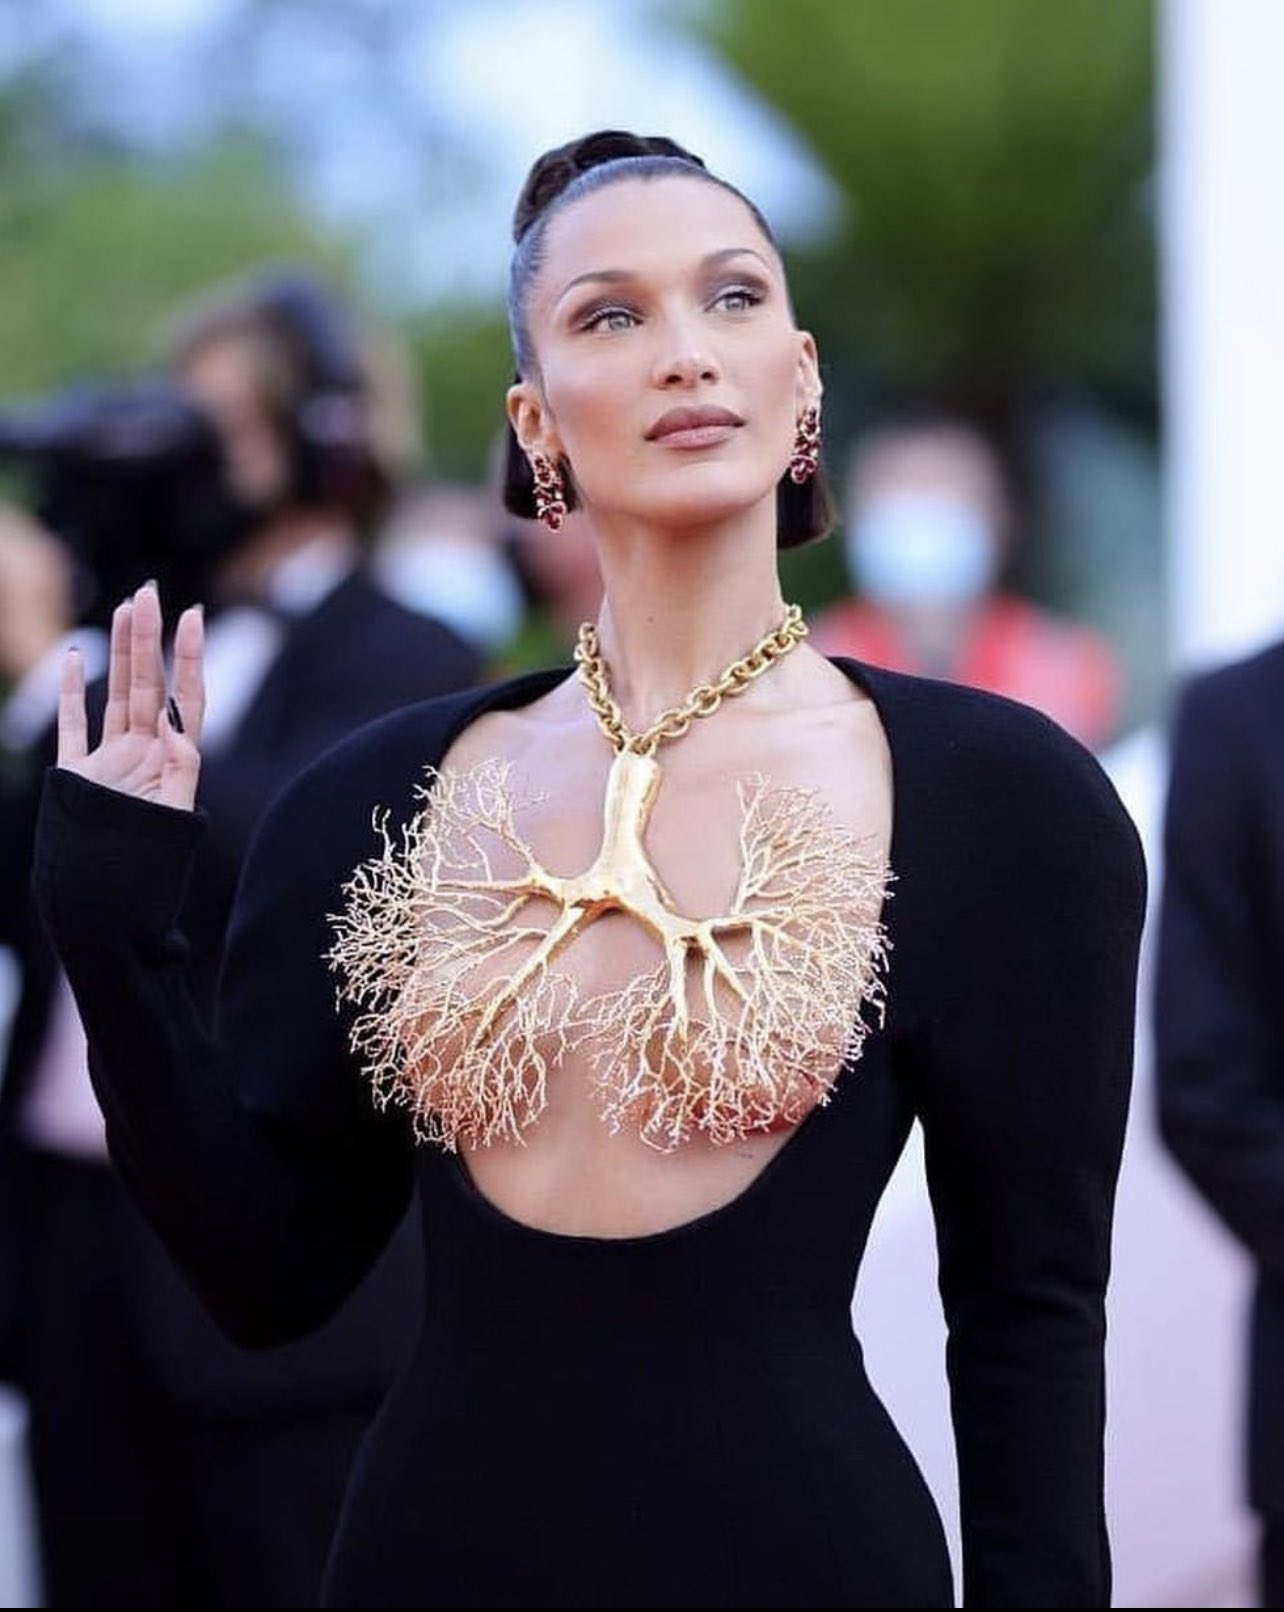 Bella Hadid arrives in statement necklace at The Three Floors Cannes Film Festival 2021 premiere